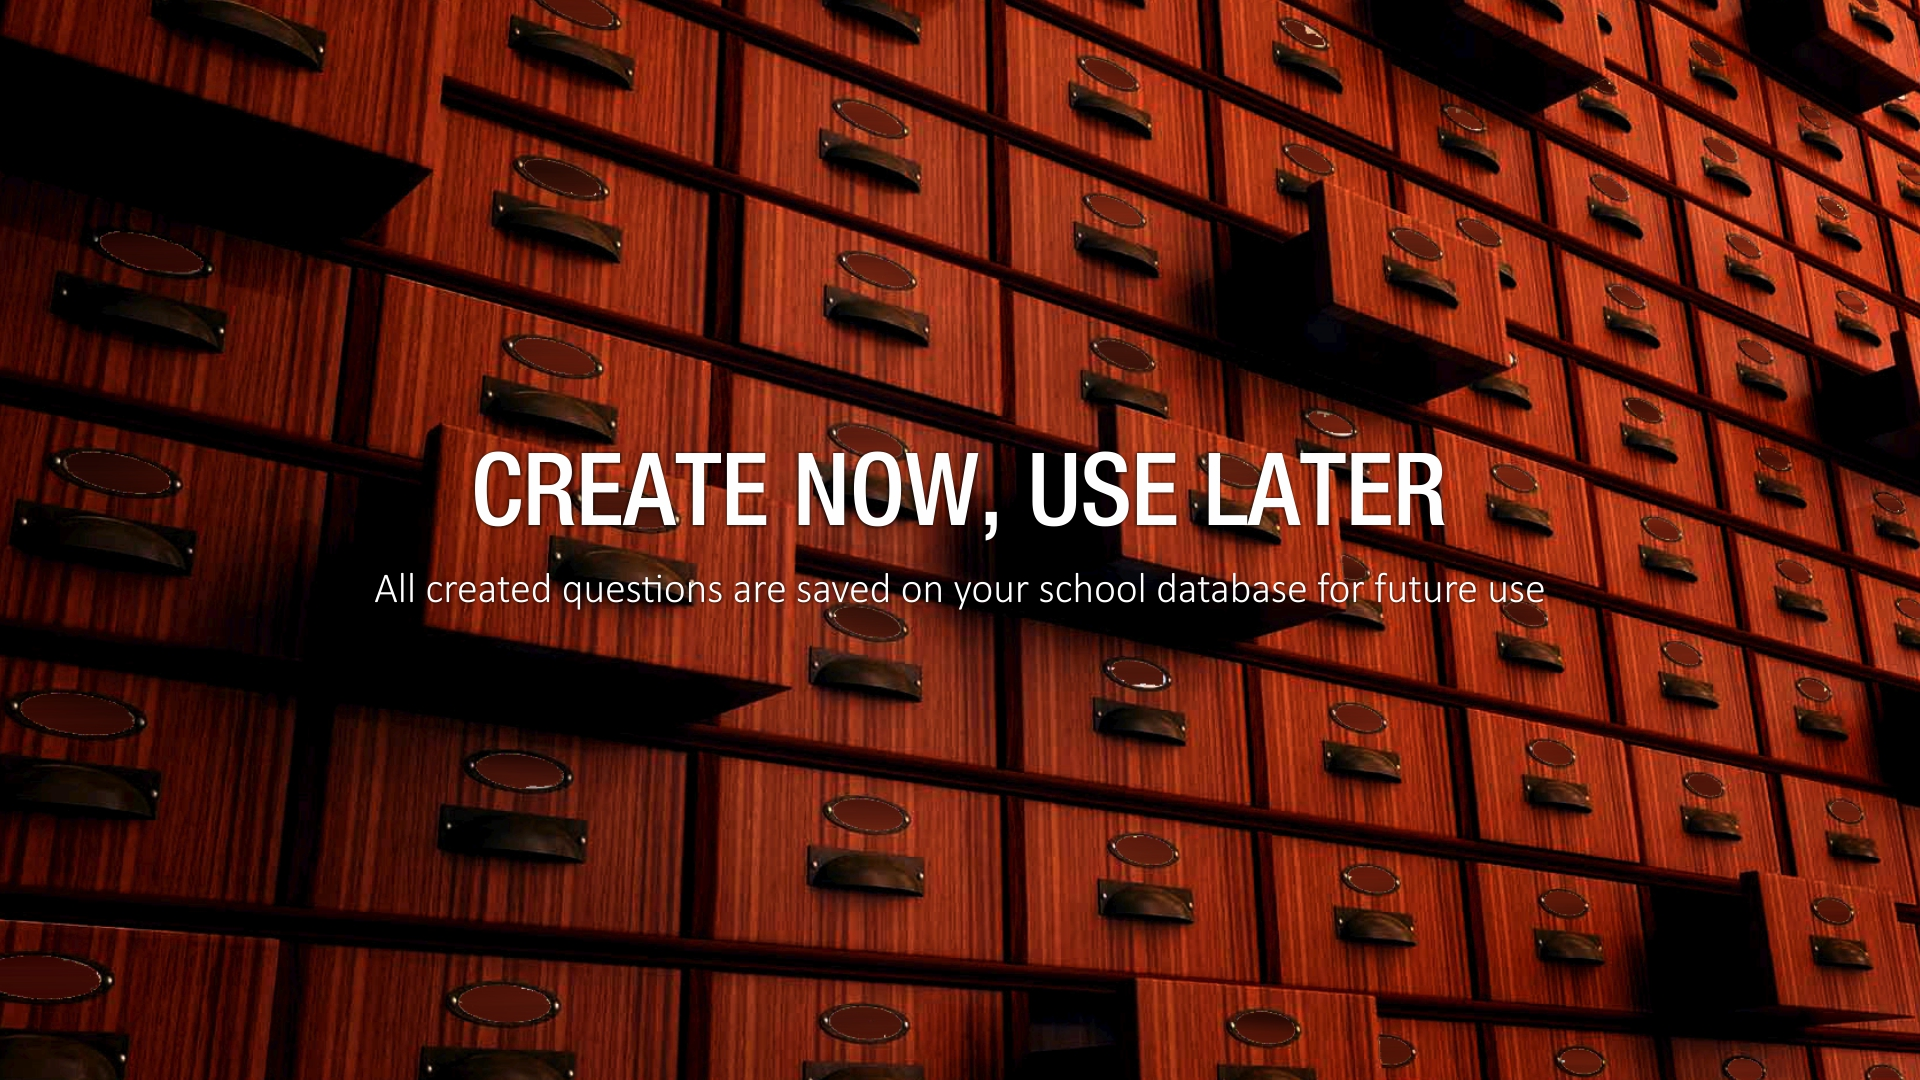 Create now, use later